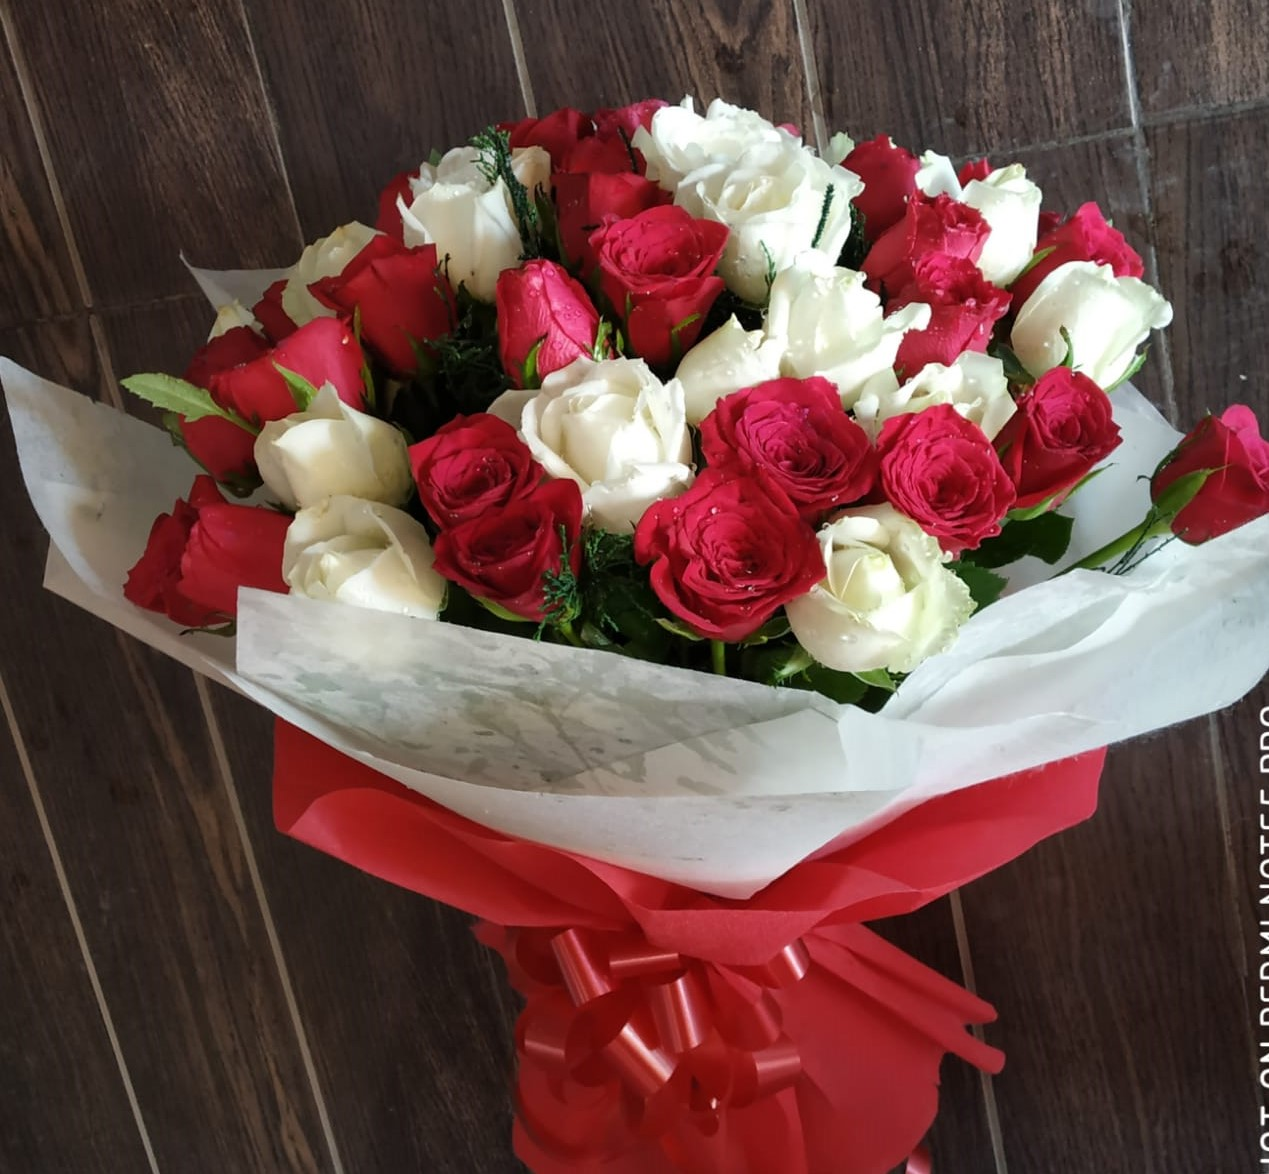 Flowers Delivery in MeerutRed & White Roses in Duble Layer Packing